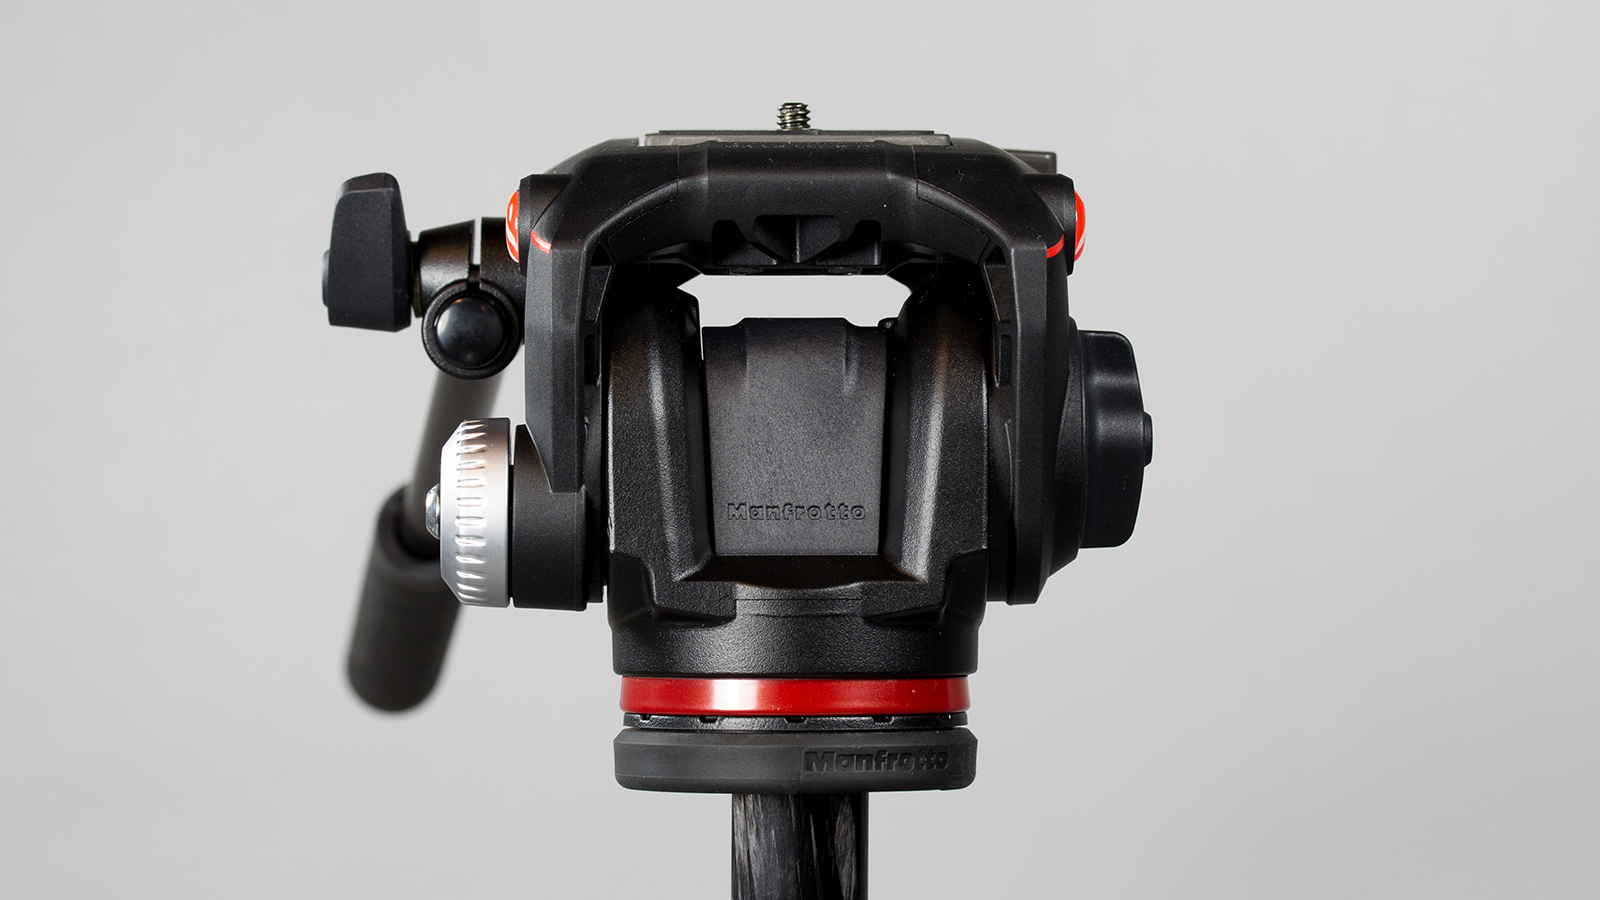 Manfrotto-MHXPRO-2W-DT-012-statiivil